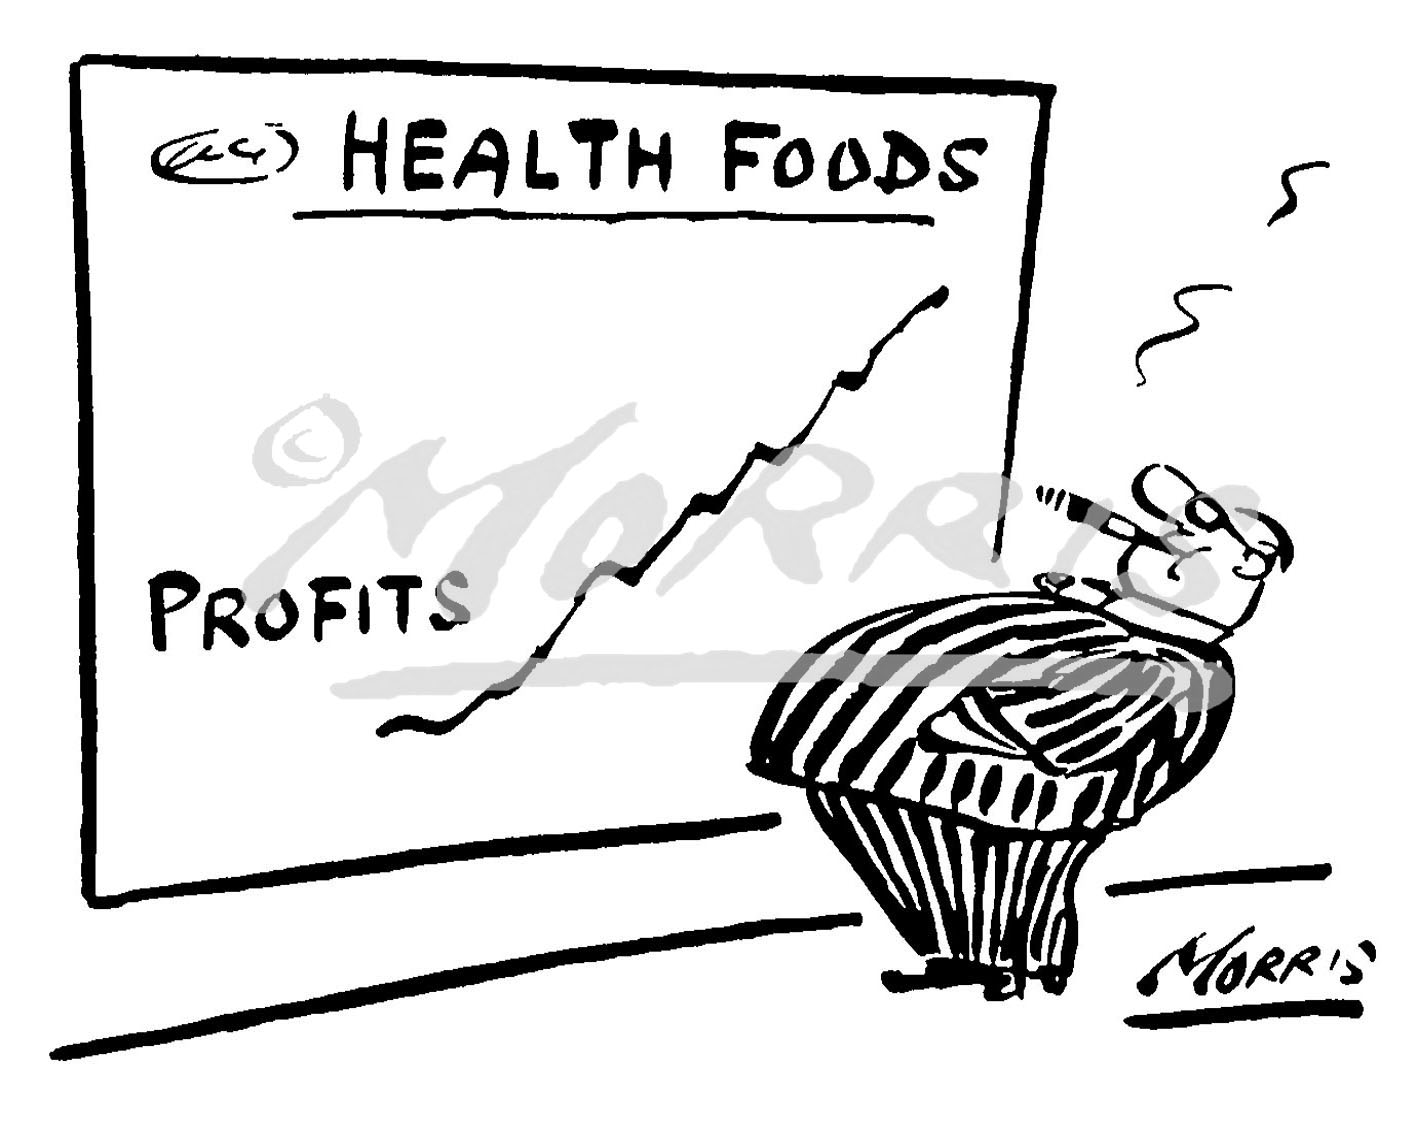 Healthcare profits graph cartoon – Ref: 0255bw